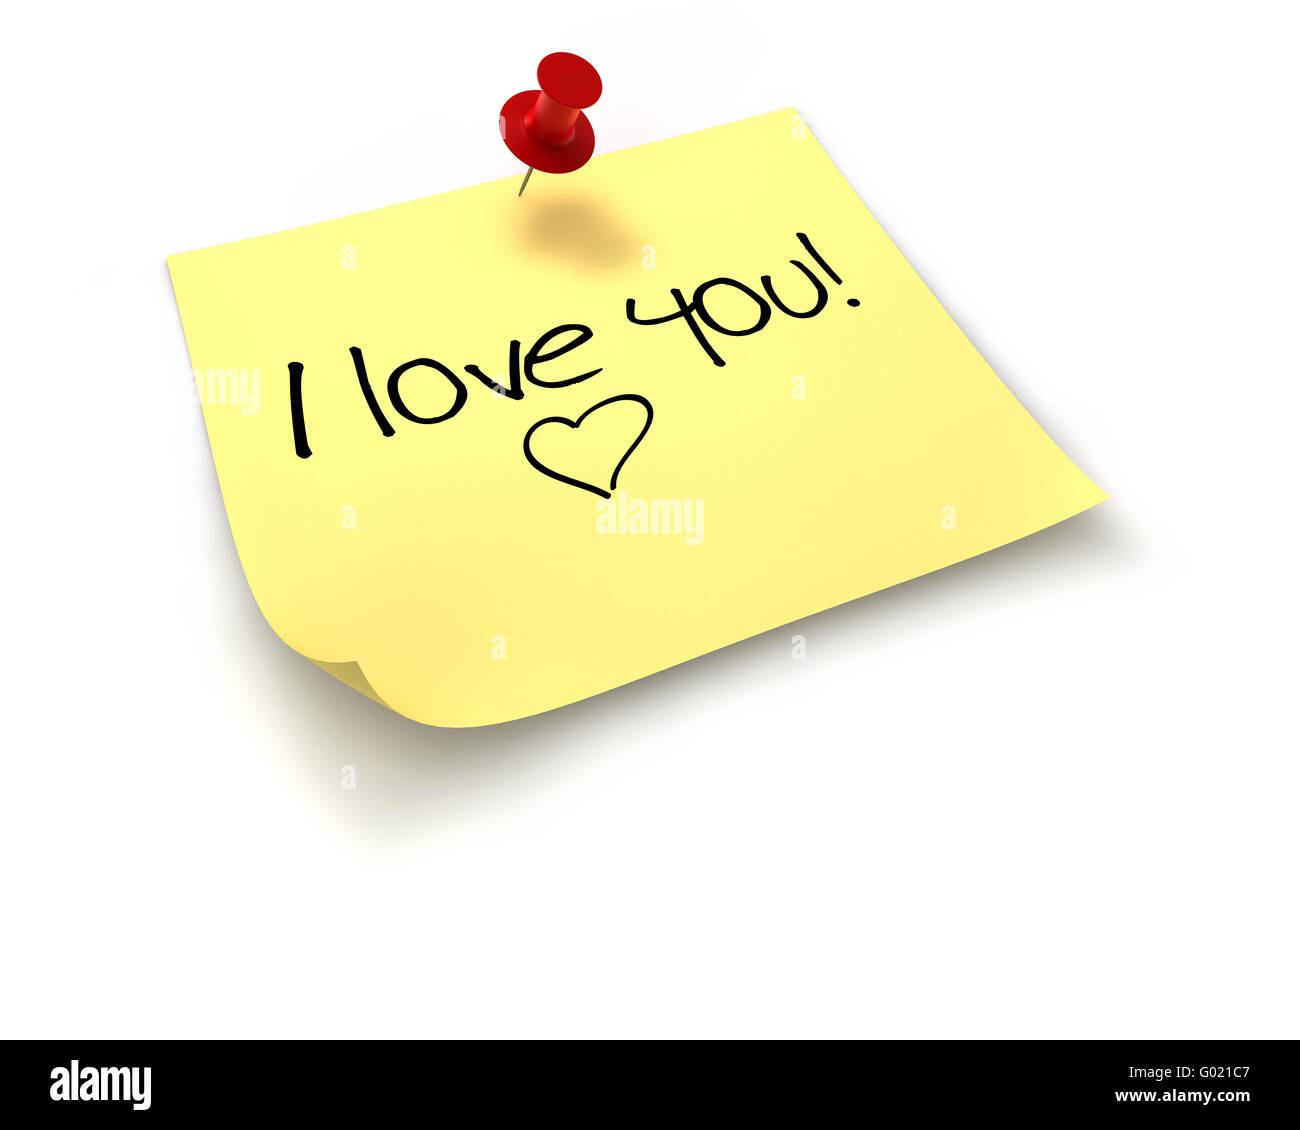 A D Pinned Yellow Note With A Red Pin With The Words I Love You